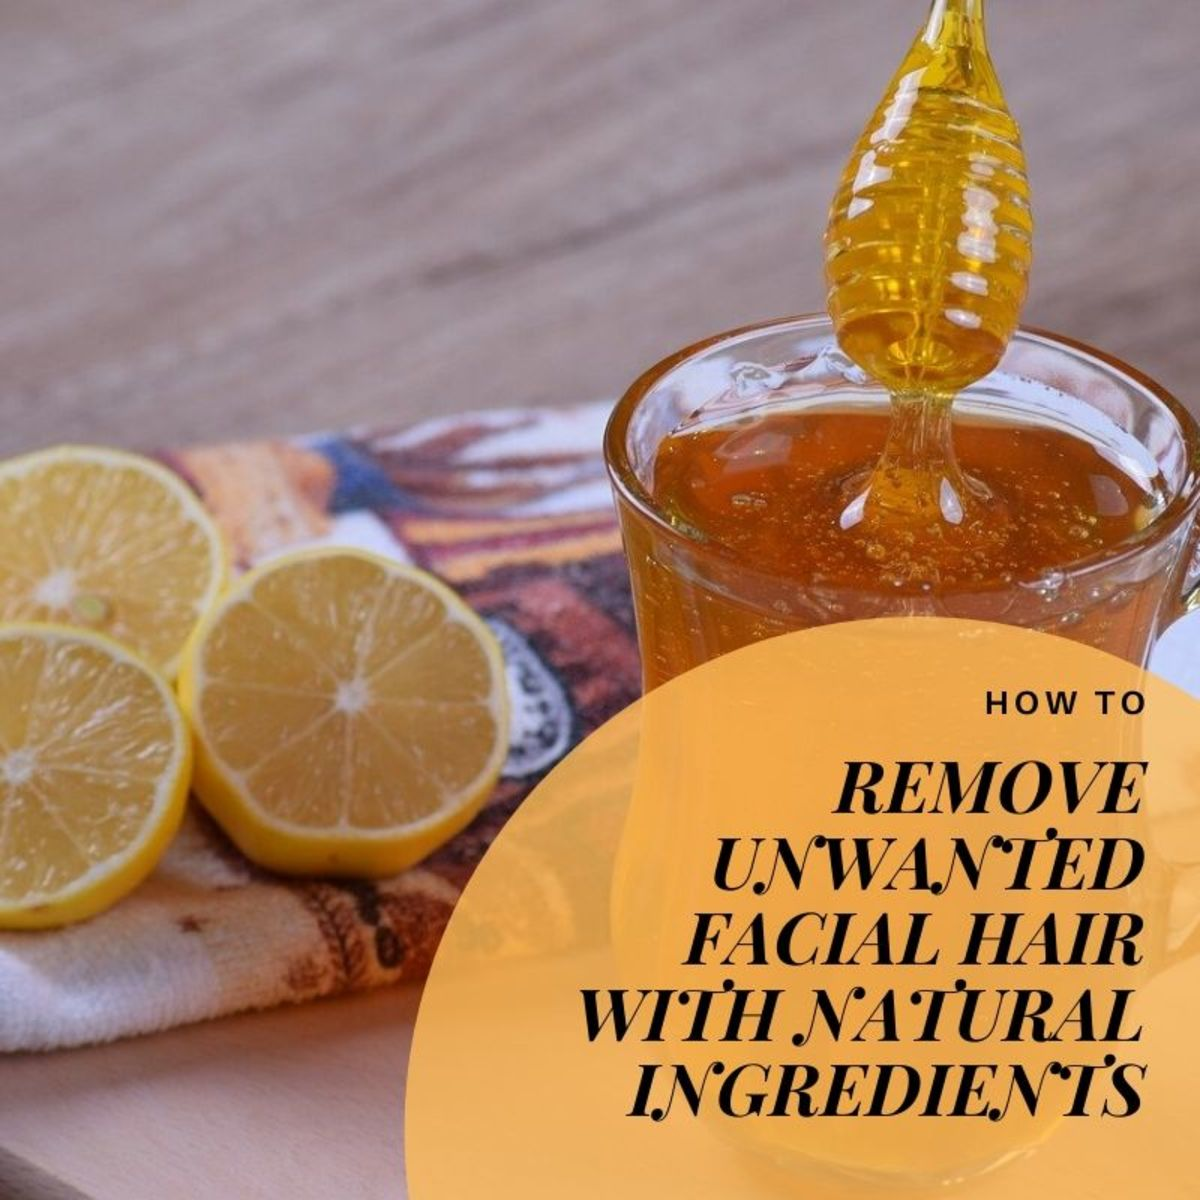 Try a facial hair remover with honey, lemon, egg whites, turmeric, and other refreshing ingredients.